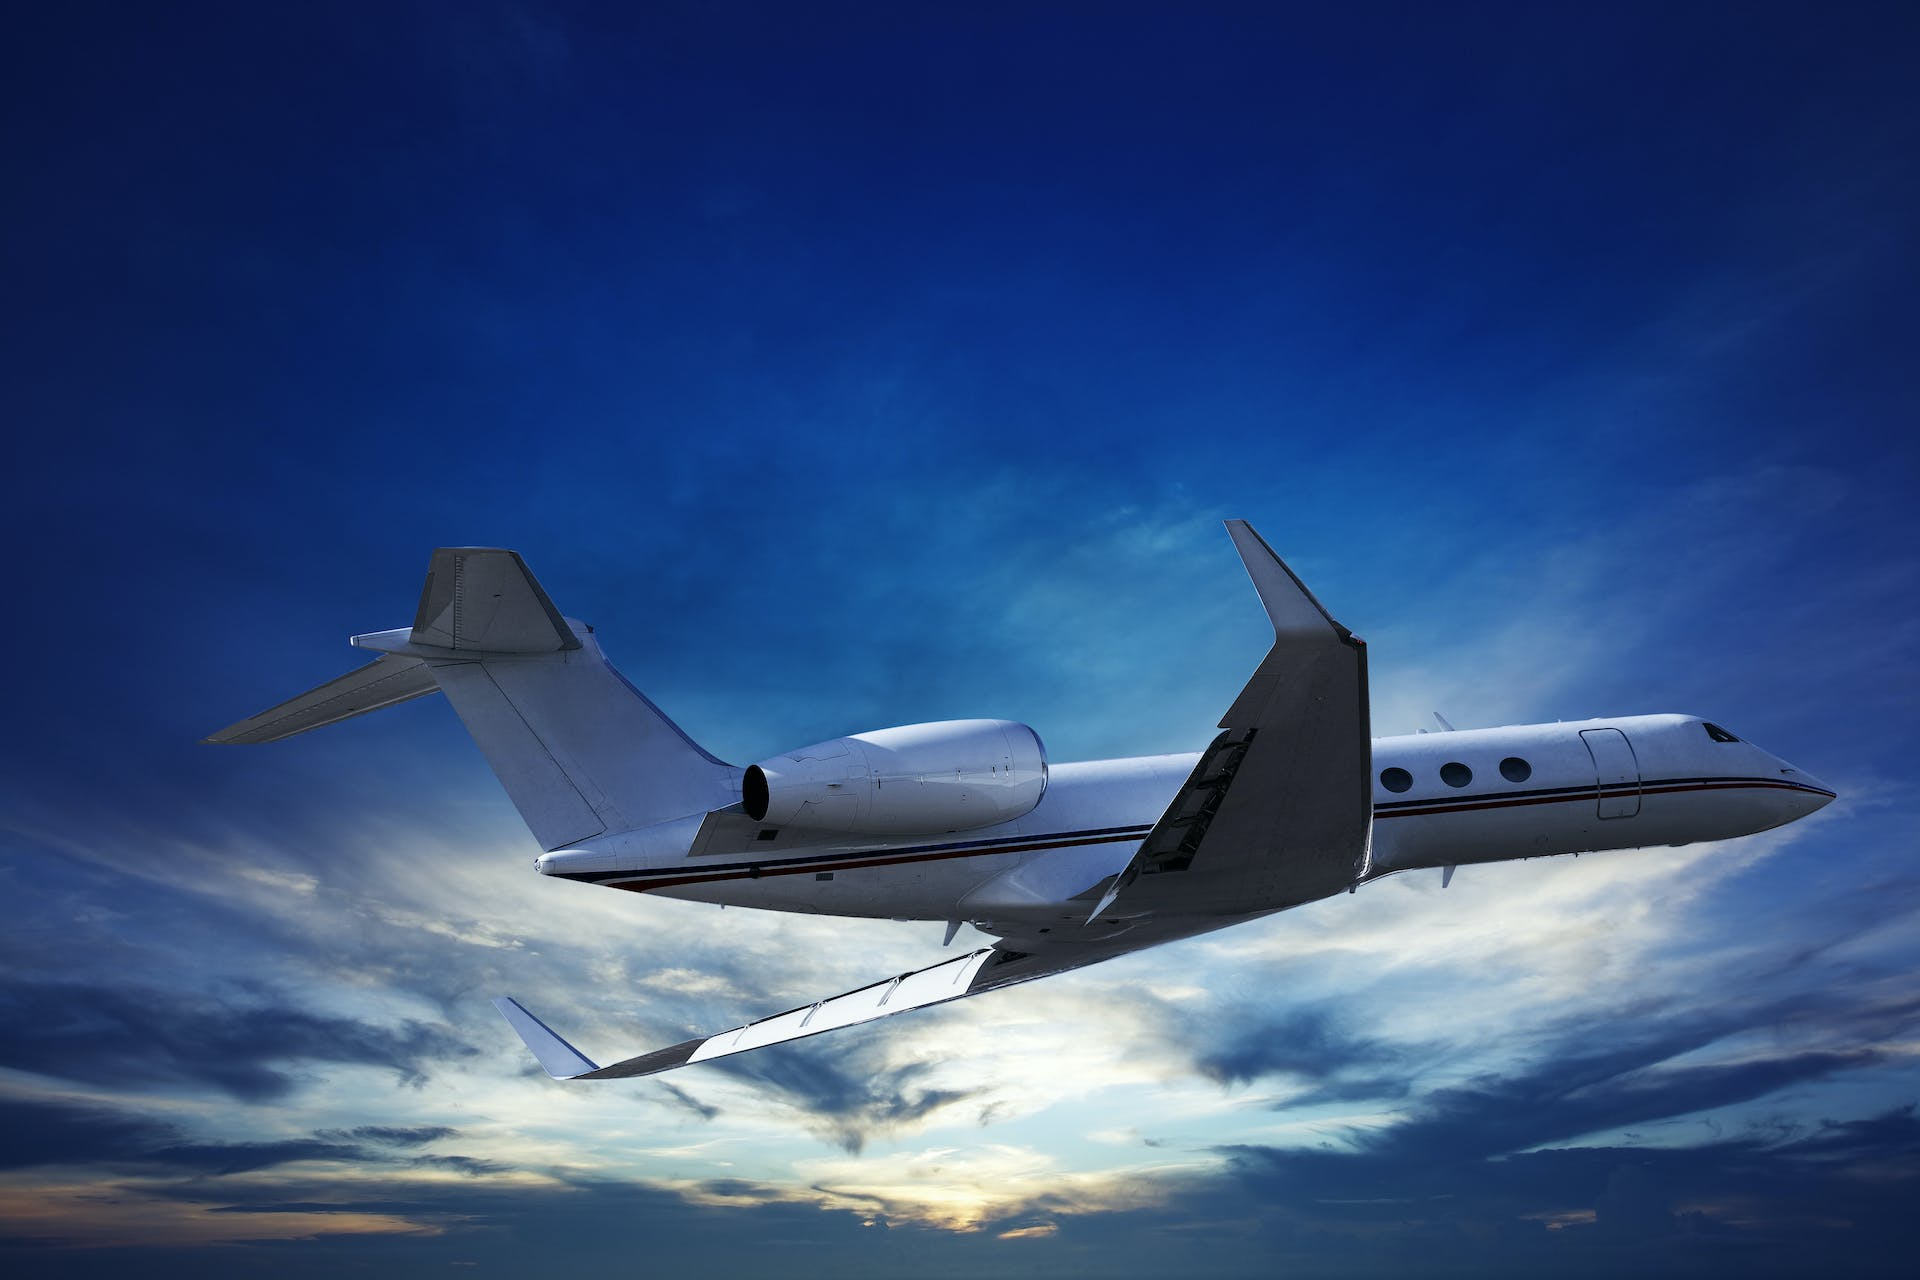 Private charter for repatriation flight is one of the best solutions to repatriate safely people during emergency situations.